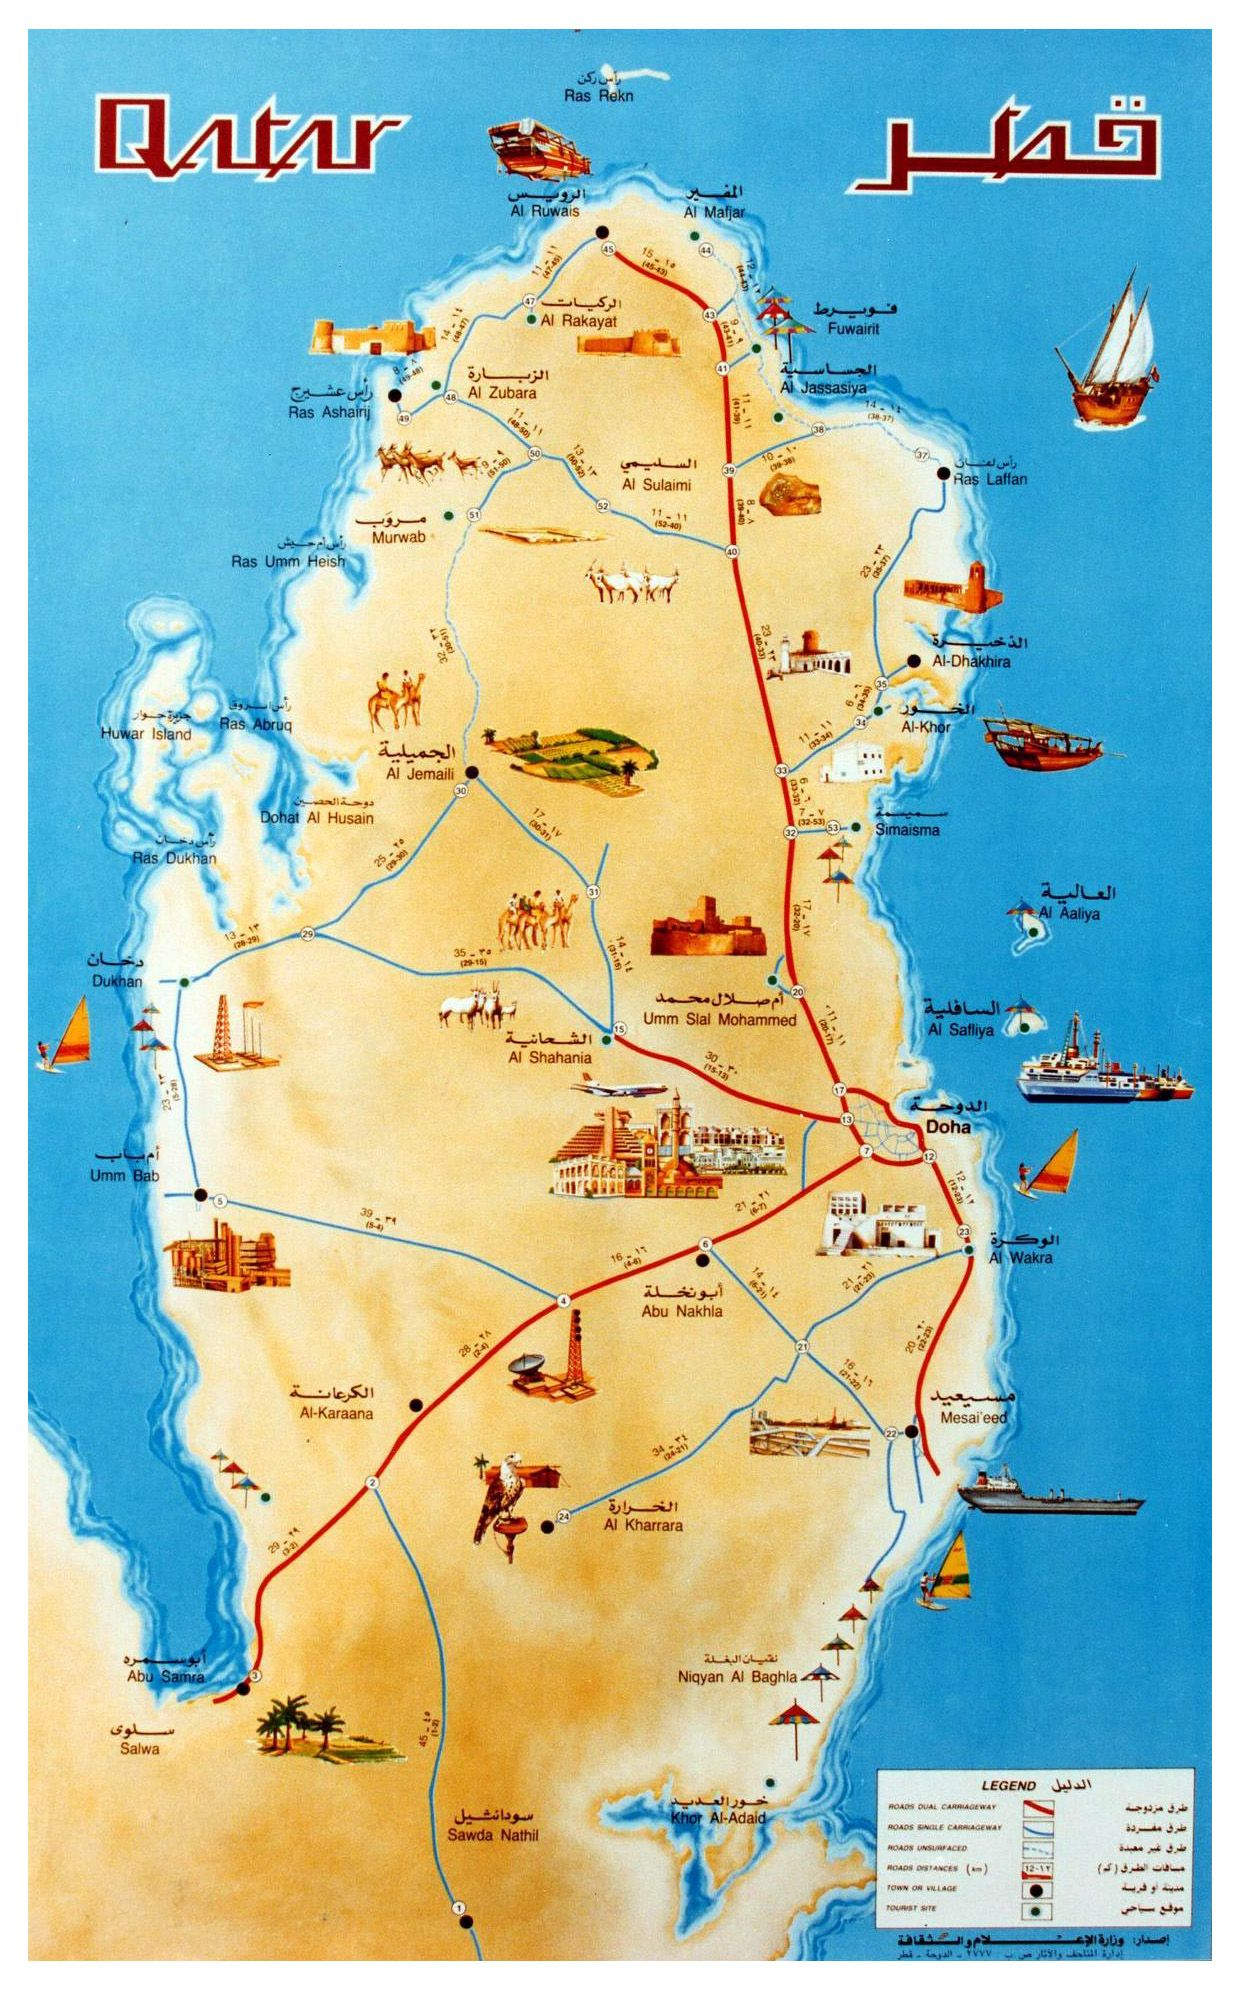 Tourist Map of Qatar in 2019 | Qatar | Map, Tourist map, Pictorial on